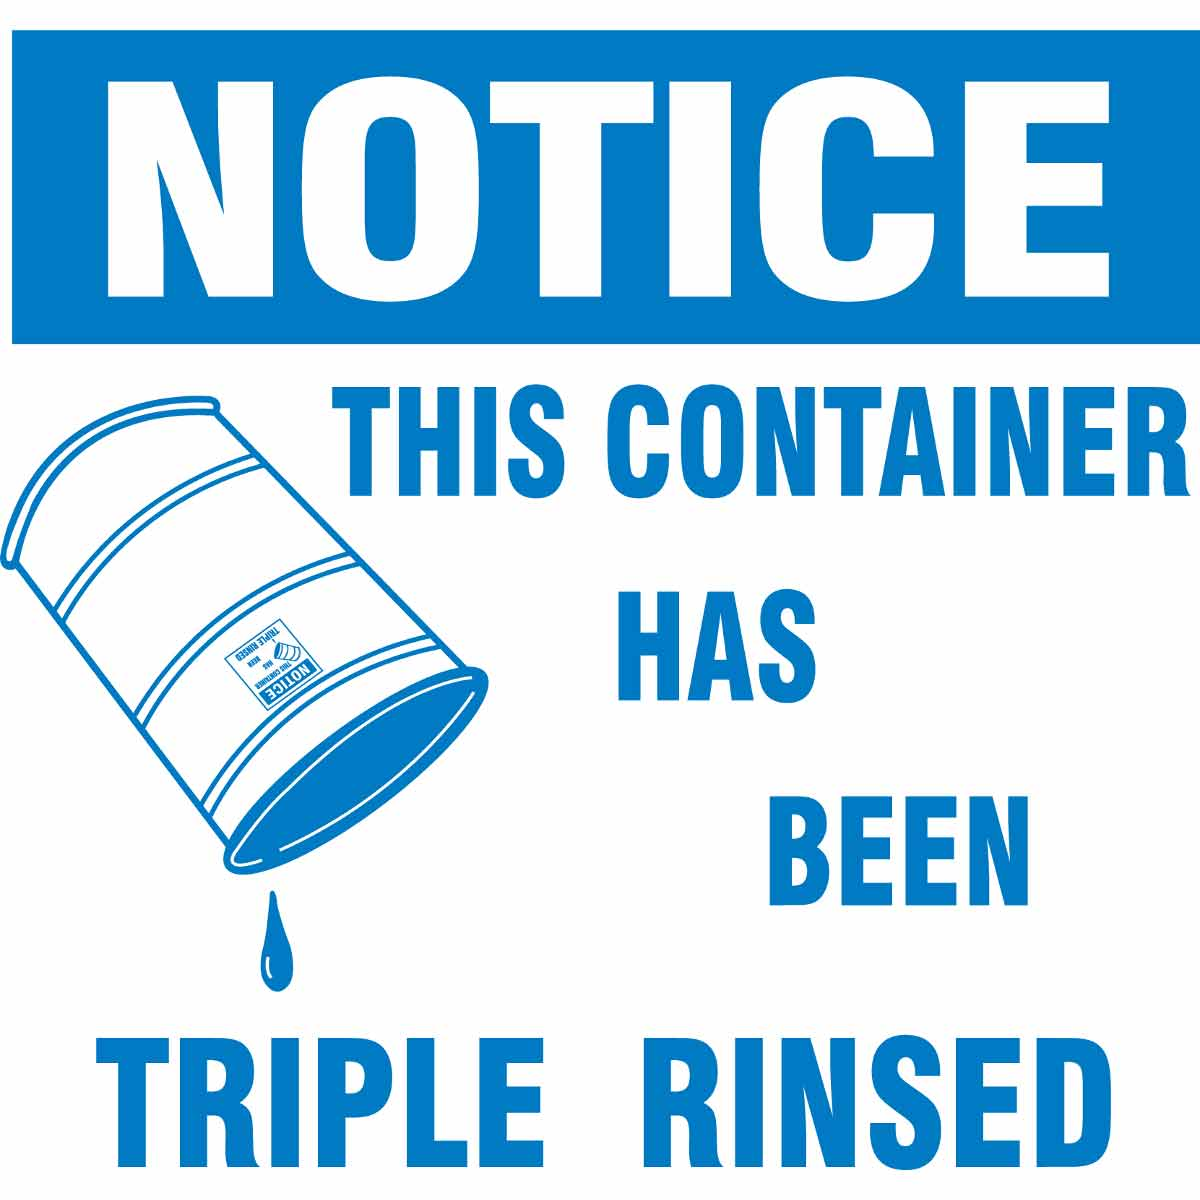 Legend Notice 6 Width Pack Of 100 Brady 60364 6 Height This Container Has Been Triple Rinsed Blue On White Color Drum Label